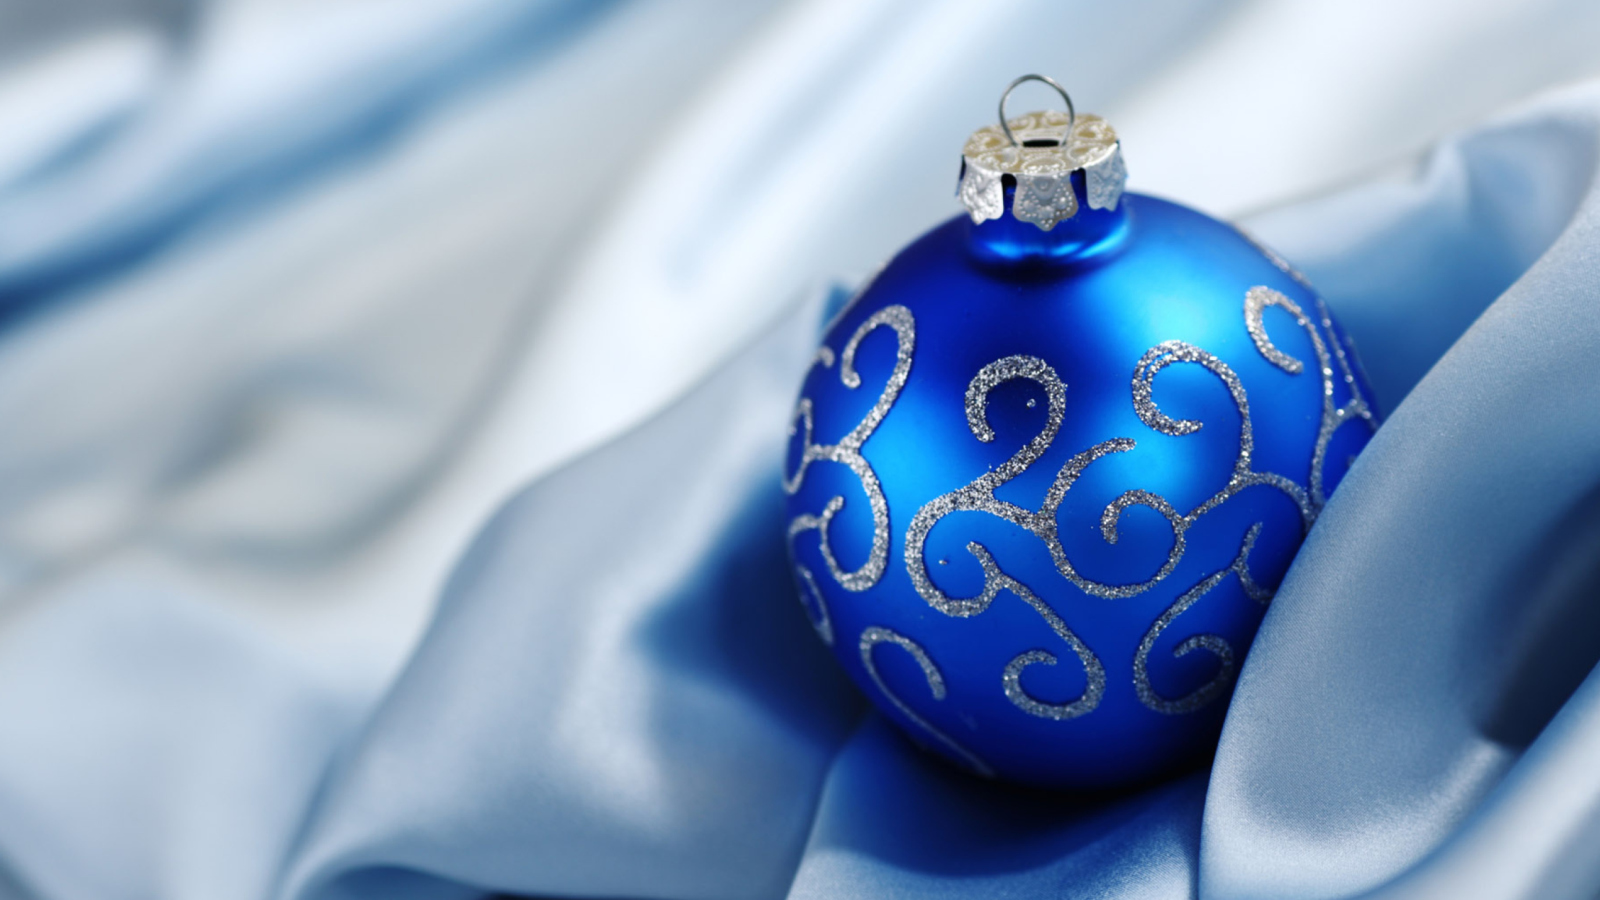 Christmas Decorations wallpaper 1600x900